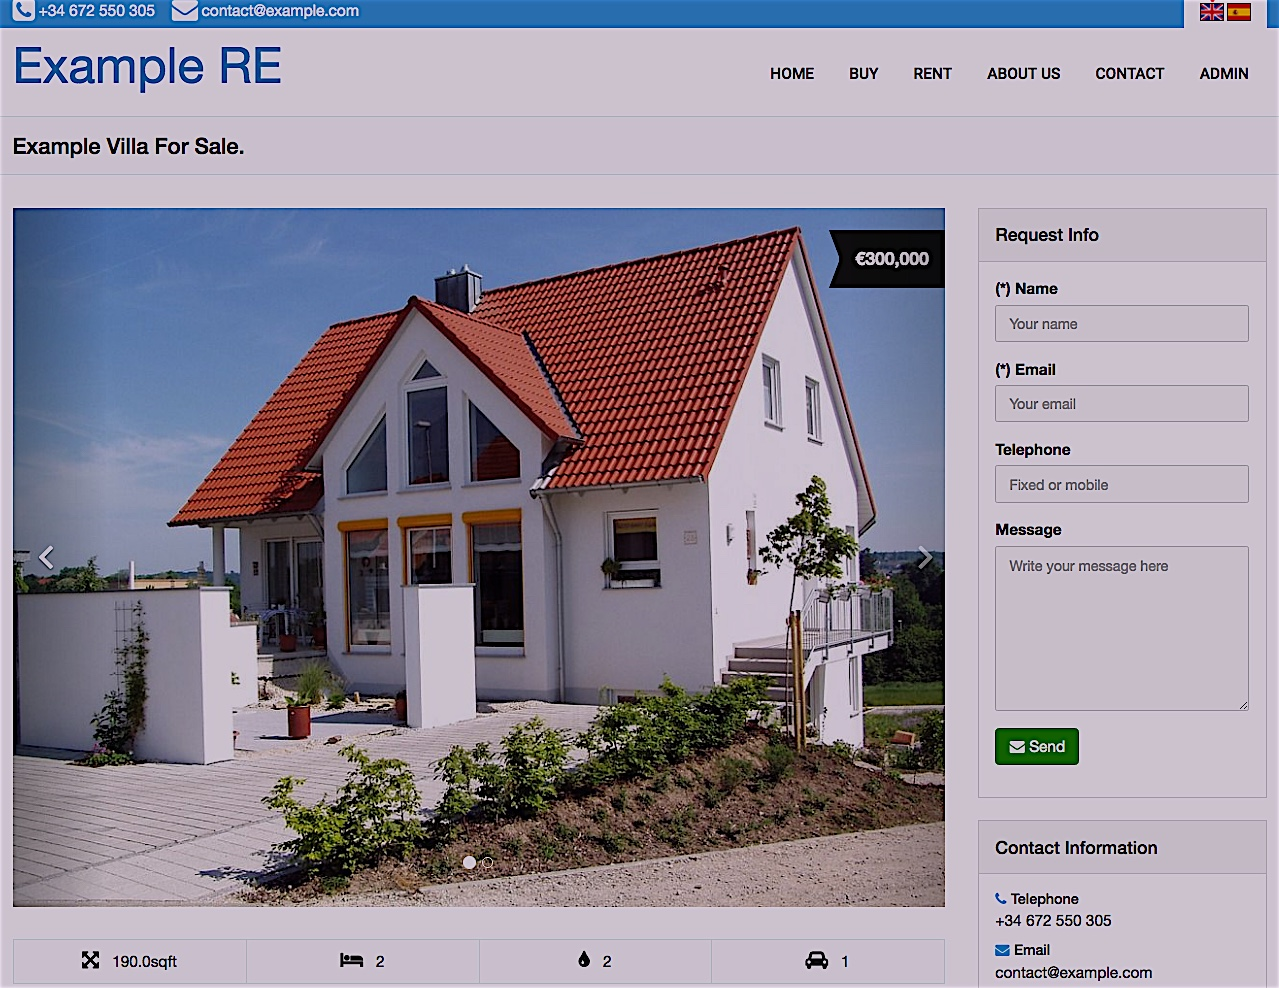 PropertyWebBuilder - Open Source software for creating real